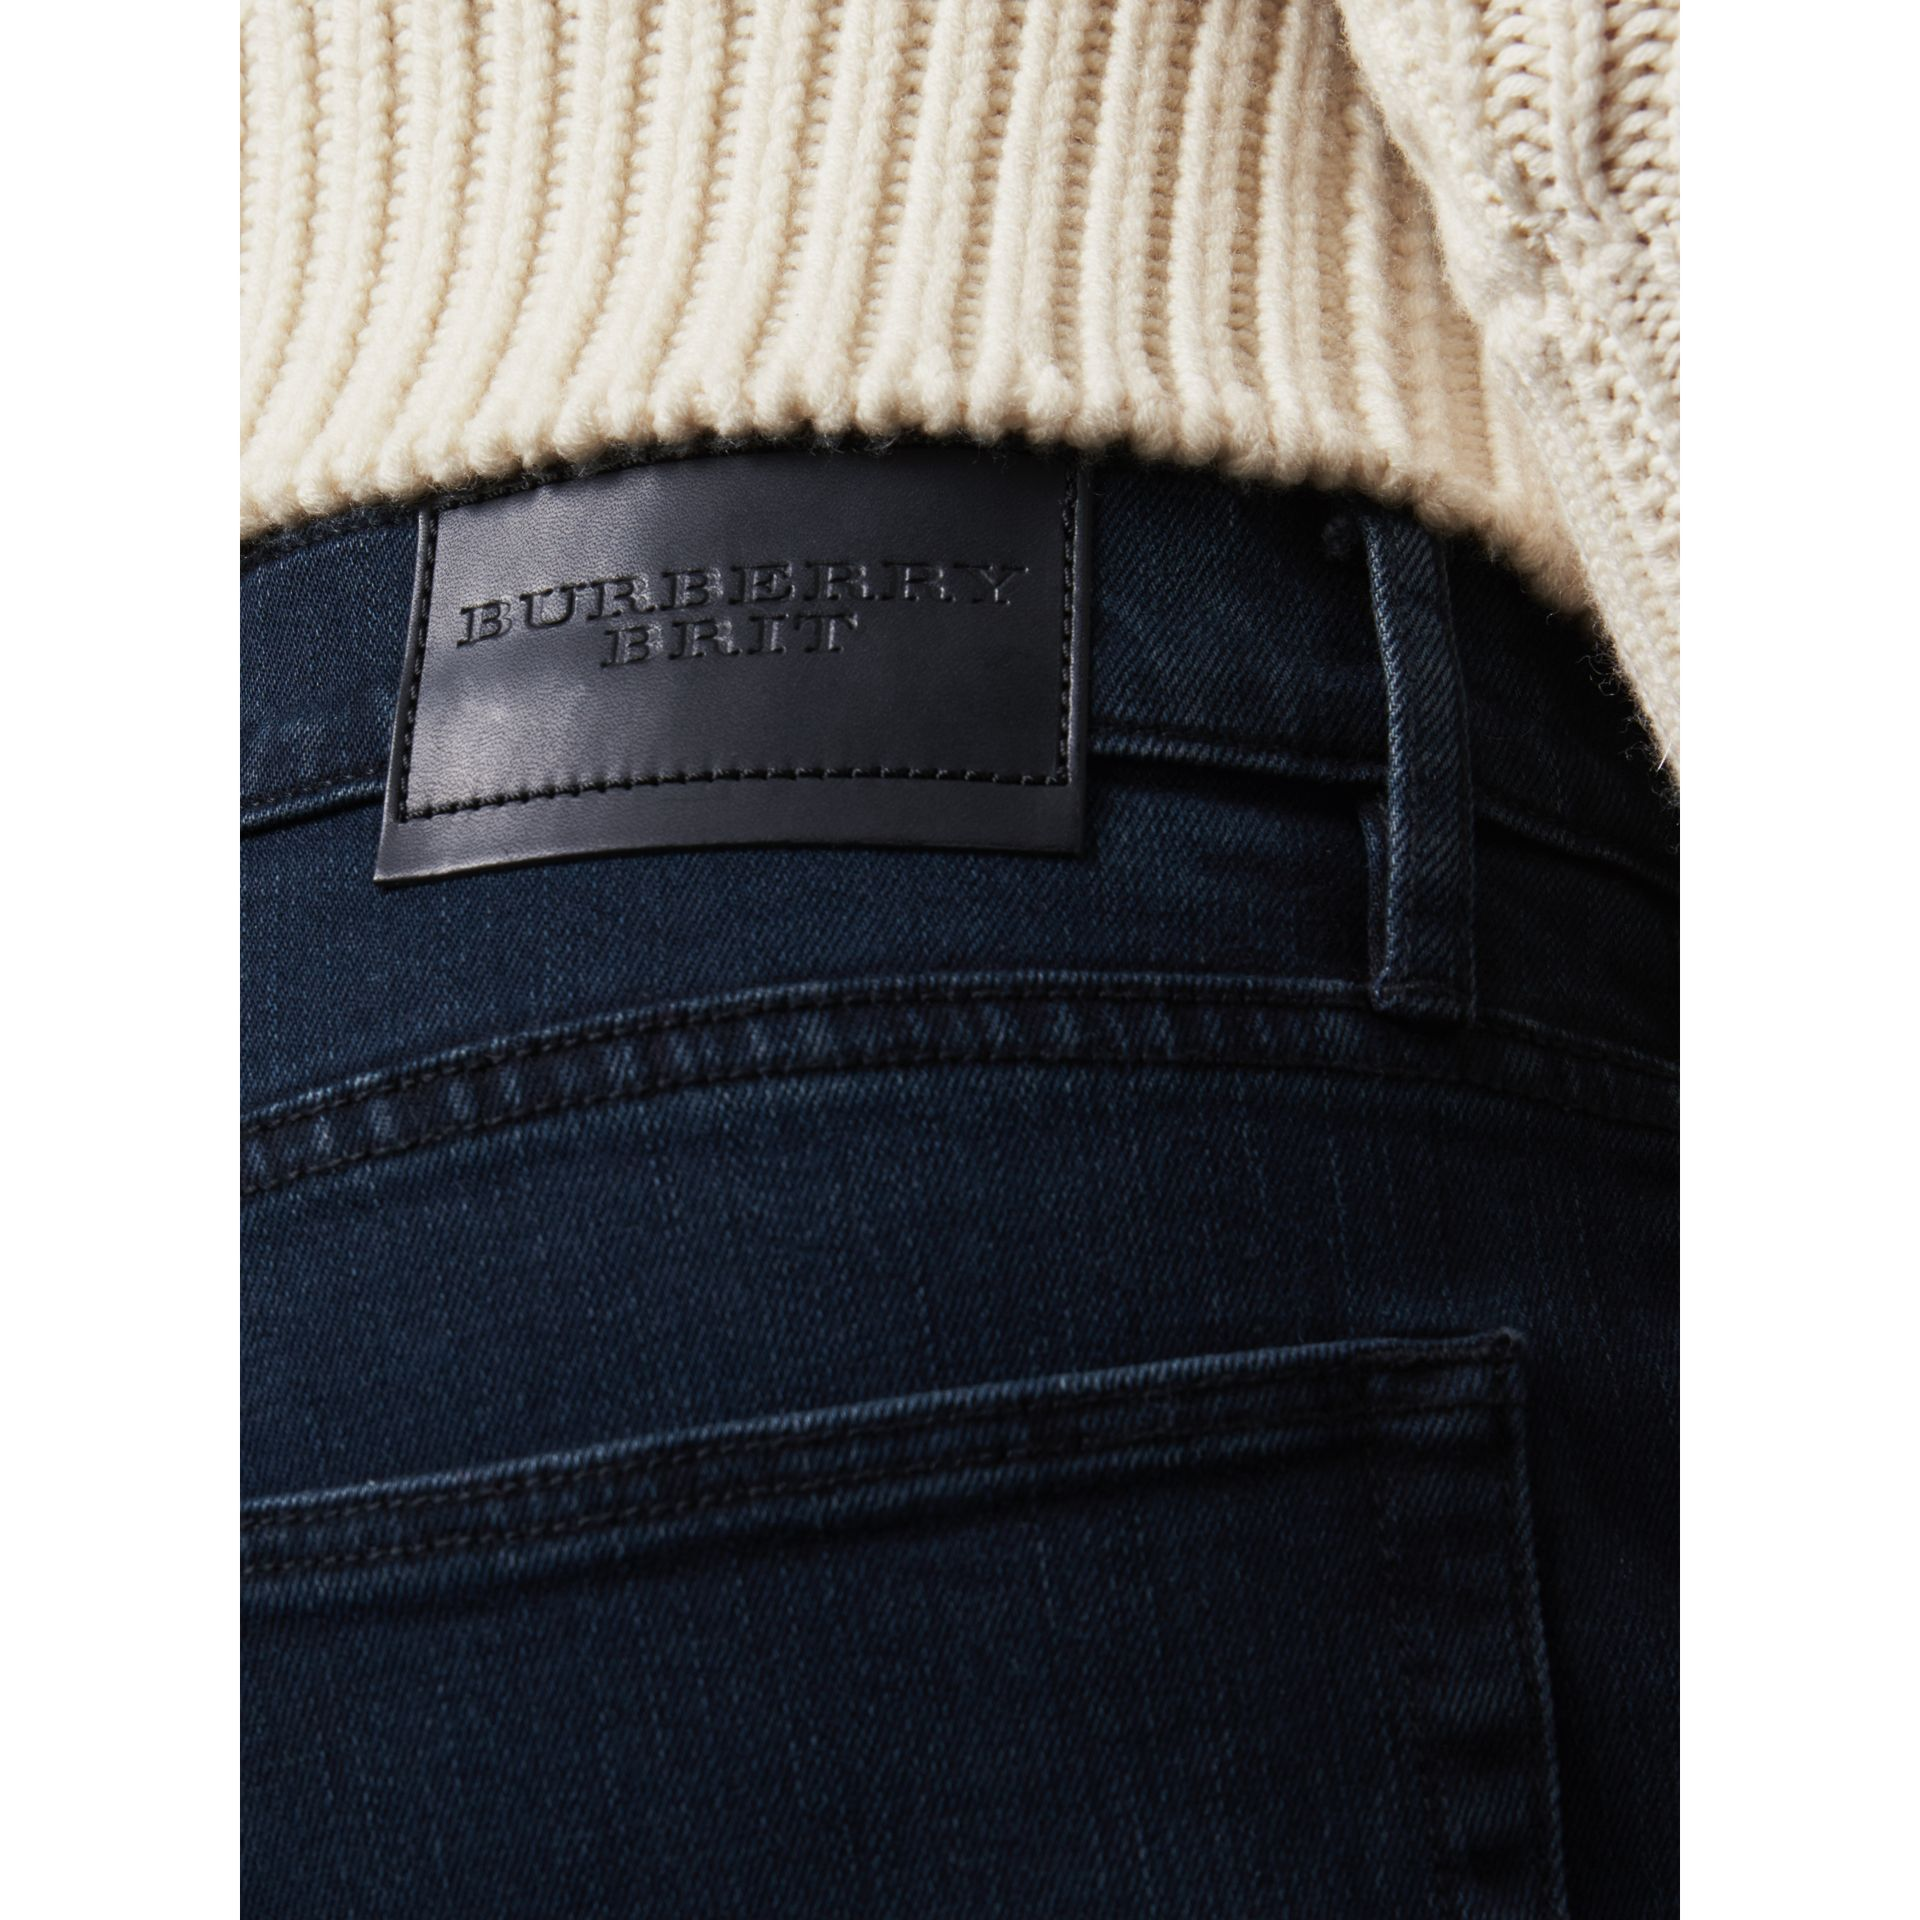 Straight Fit Indigo Stretch Jeans in Dark - Men | Burberry - gallery image 1